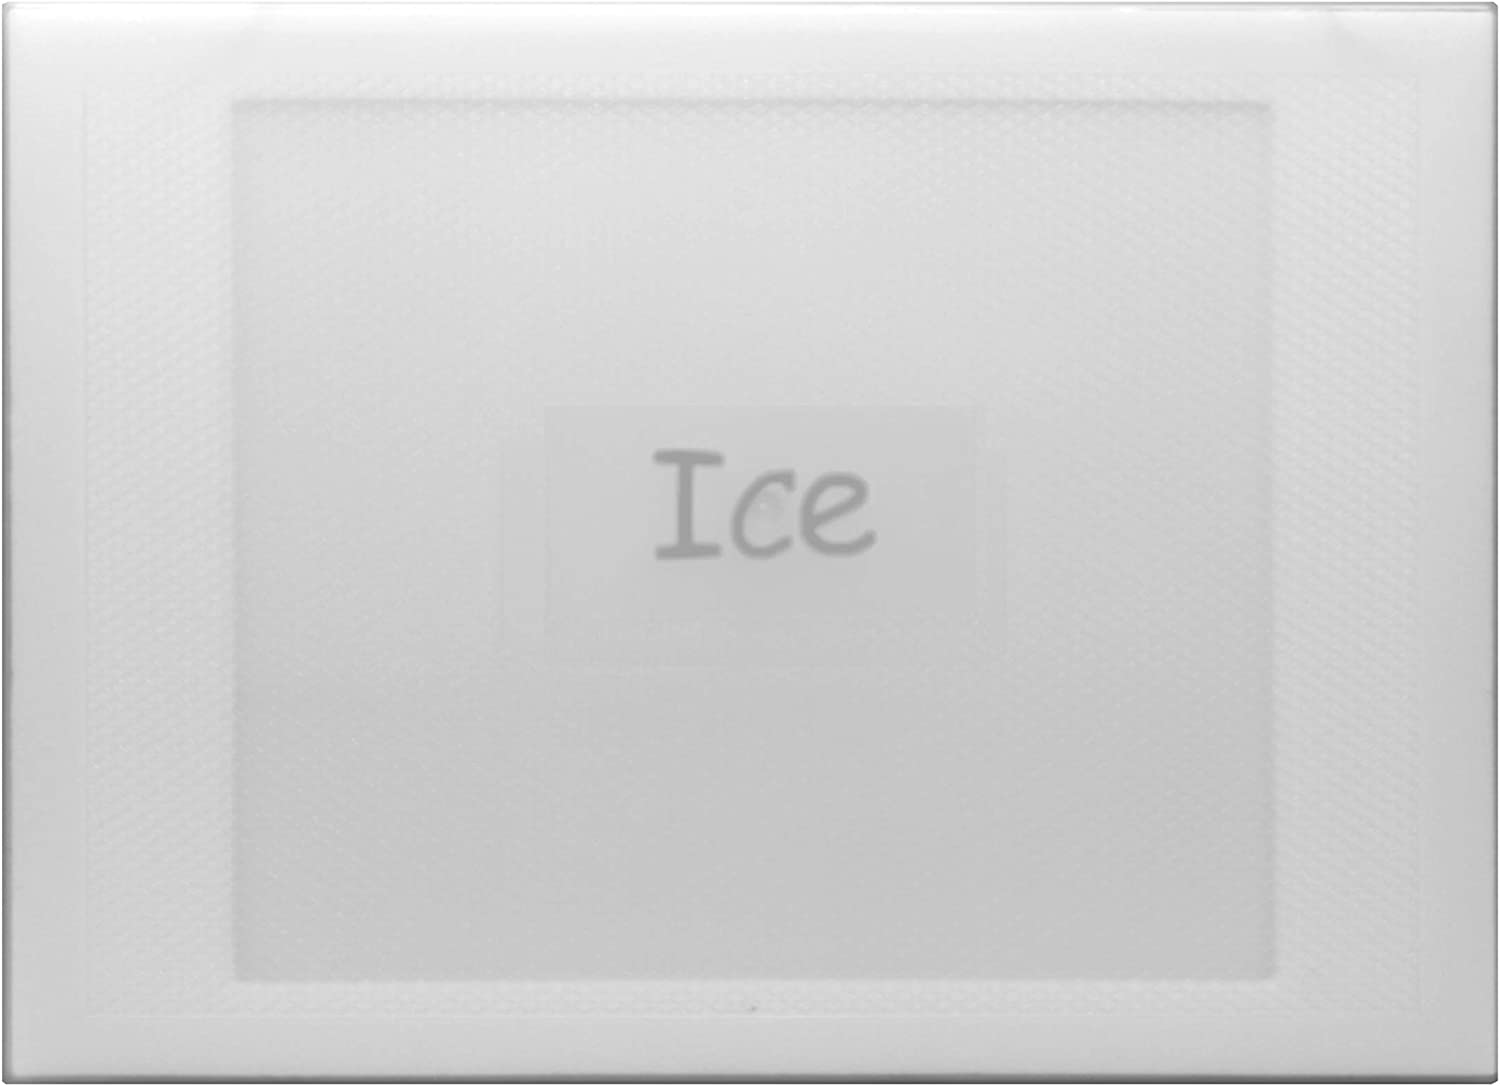 ICE 100mm x 150mm Soft Grad ND4 Square Filter Neutral Density 2 Stop Optical Glass ND GND w Hard Clamshell Case